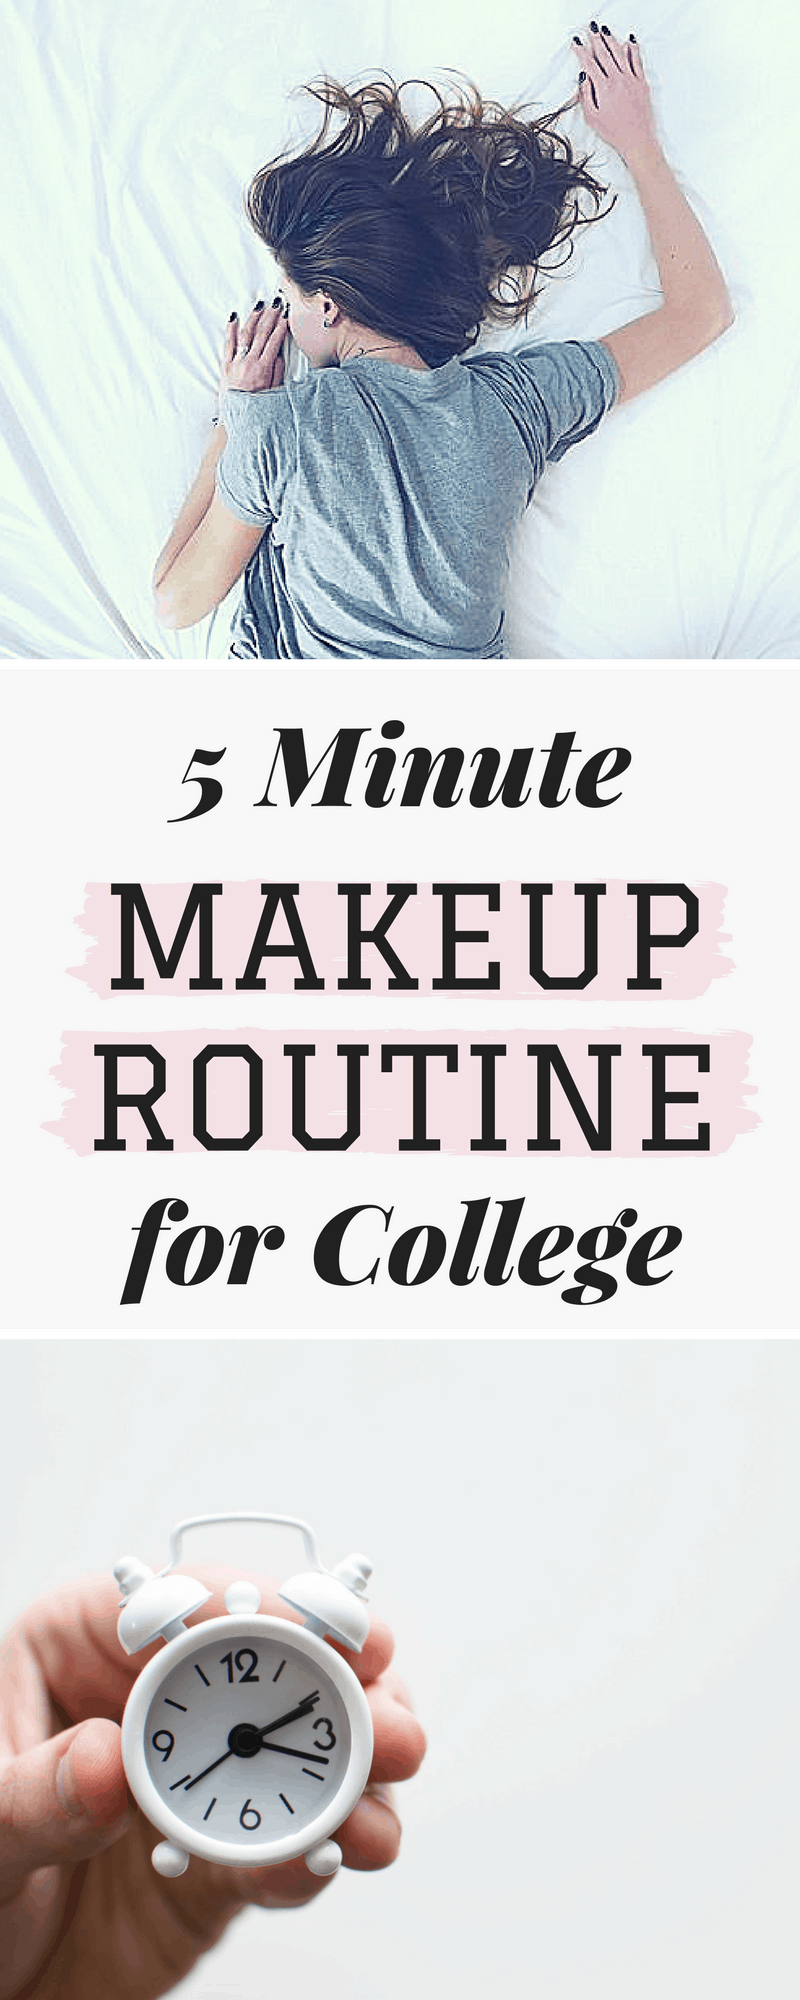 5 minute makeup for college - my ultimate routine